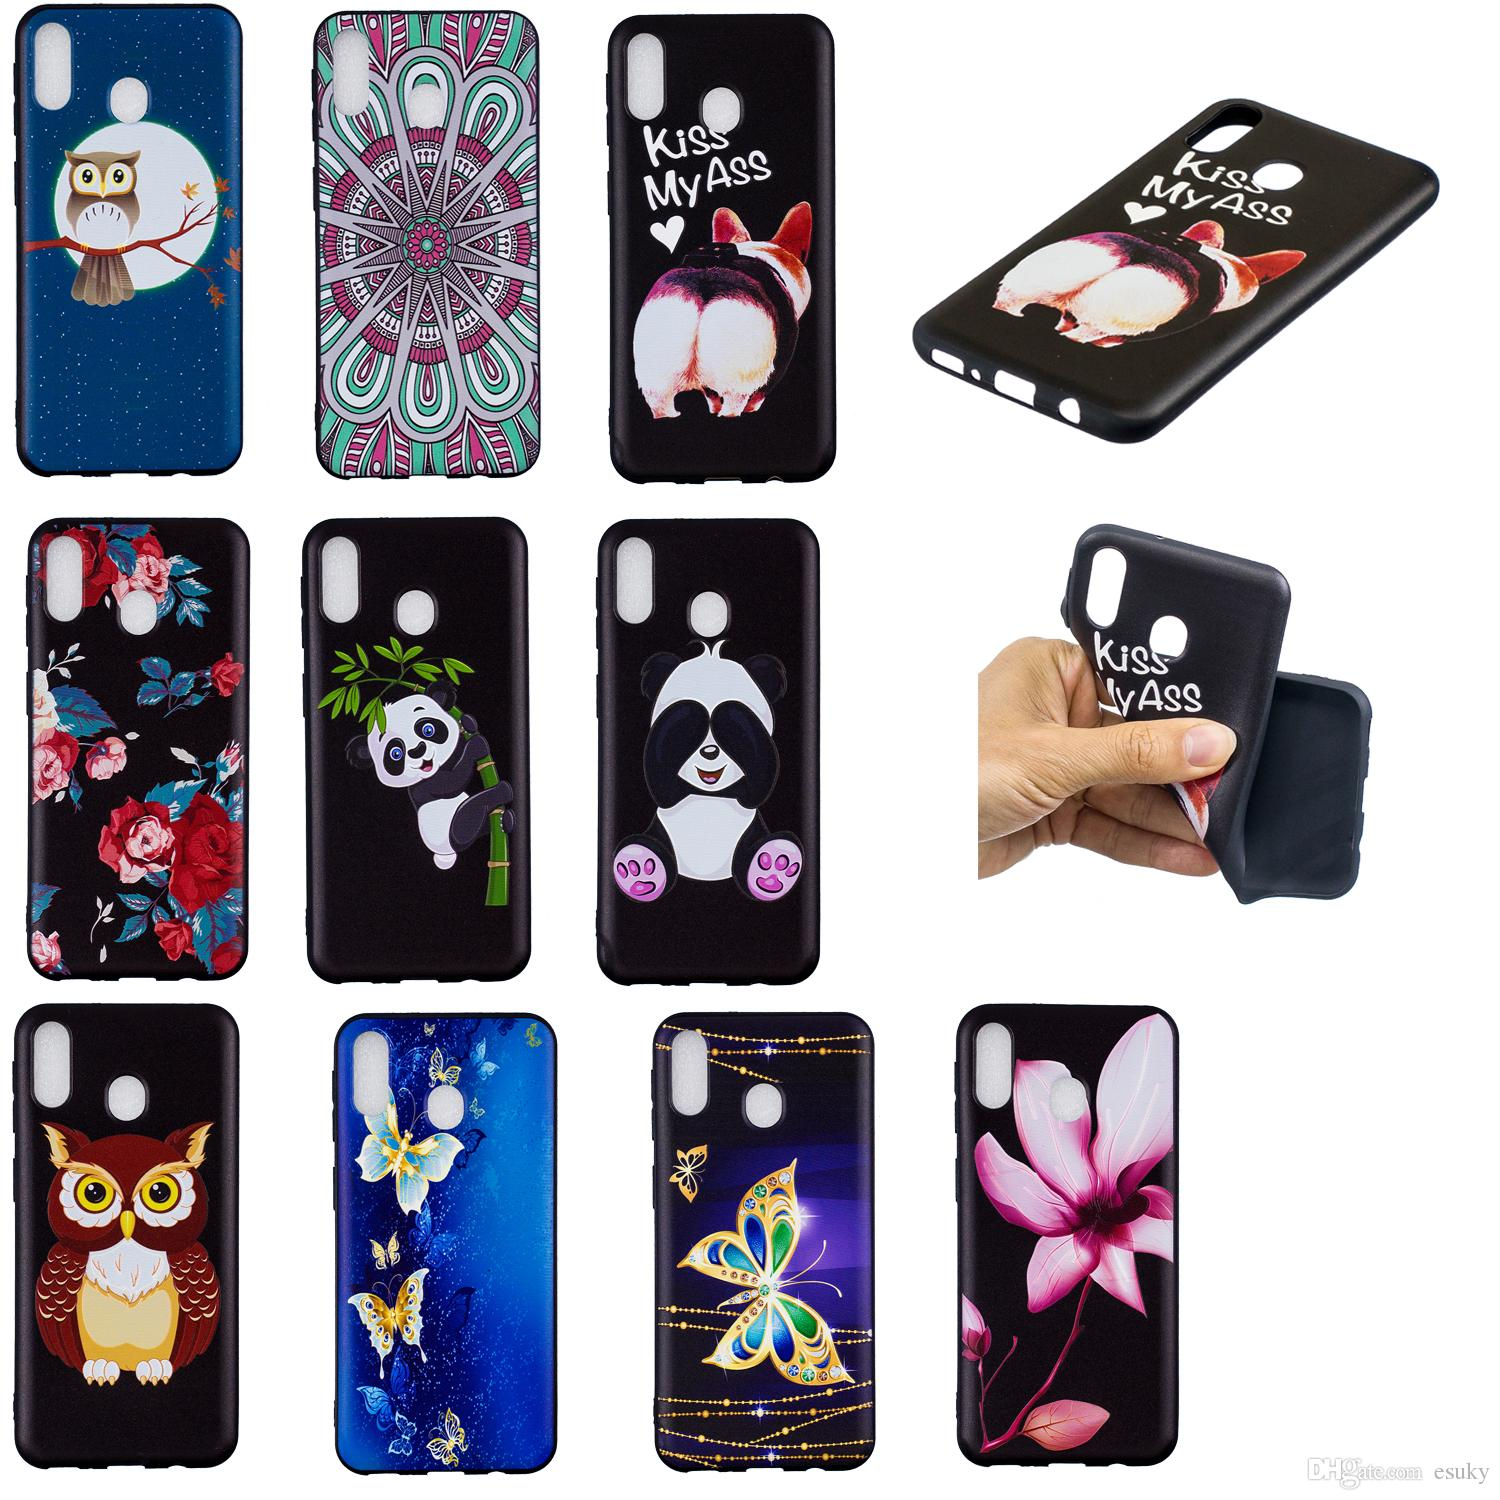 Soft TPU Back Phone Case For Samsung M10 20 S10 10e 9 8 7 Slim Fit Flower butterfly owl panda Case for Samsung A3 5 6 7 750 530 510 Cover